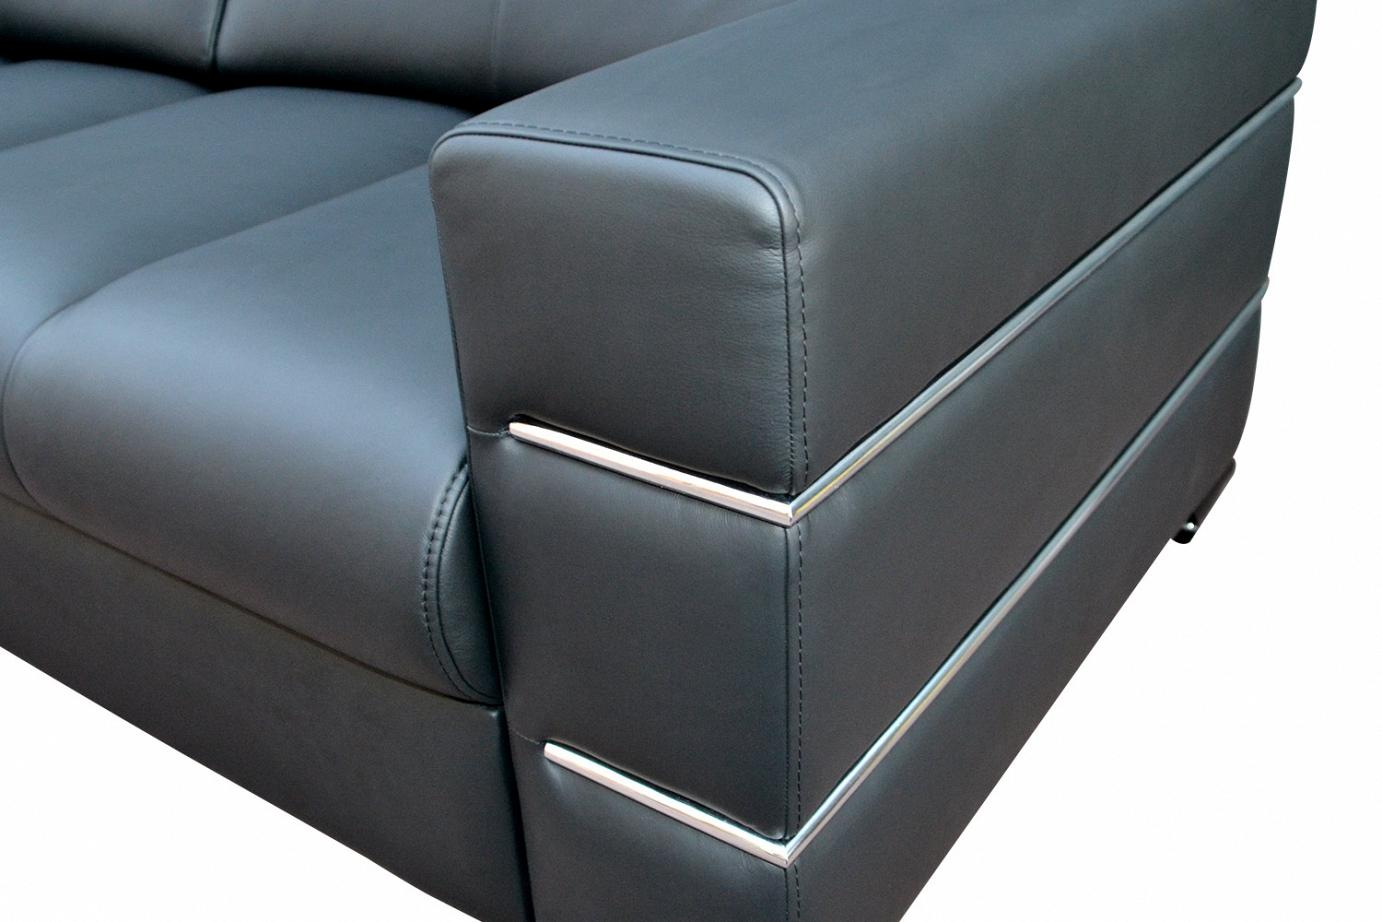 Chrome On The Armrests Of Sofas And Chairs Elegance